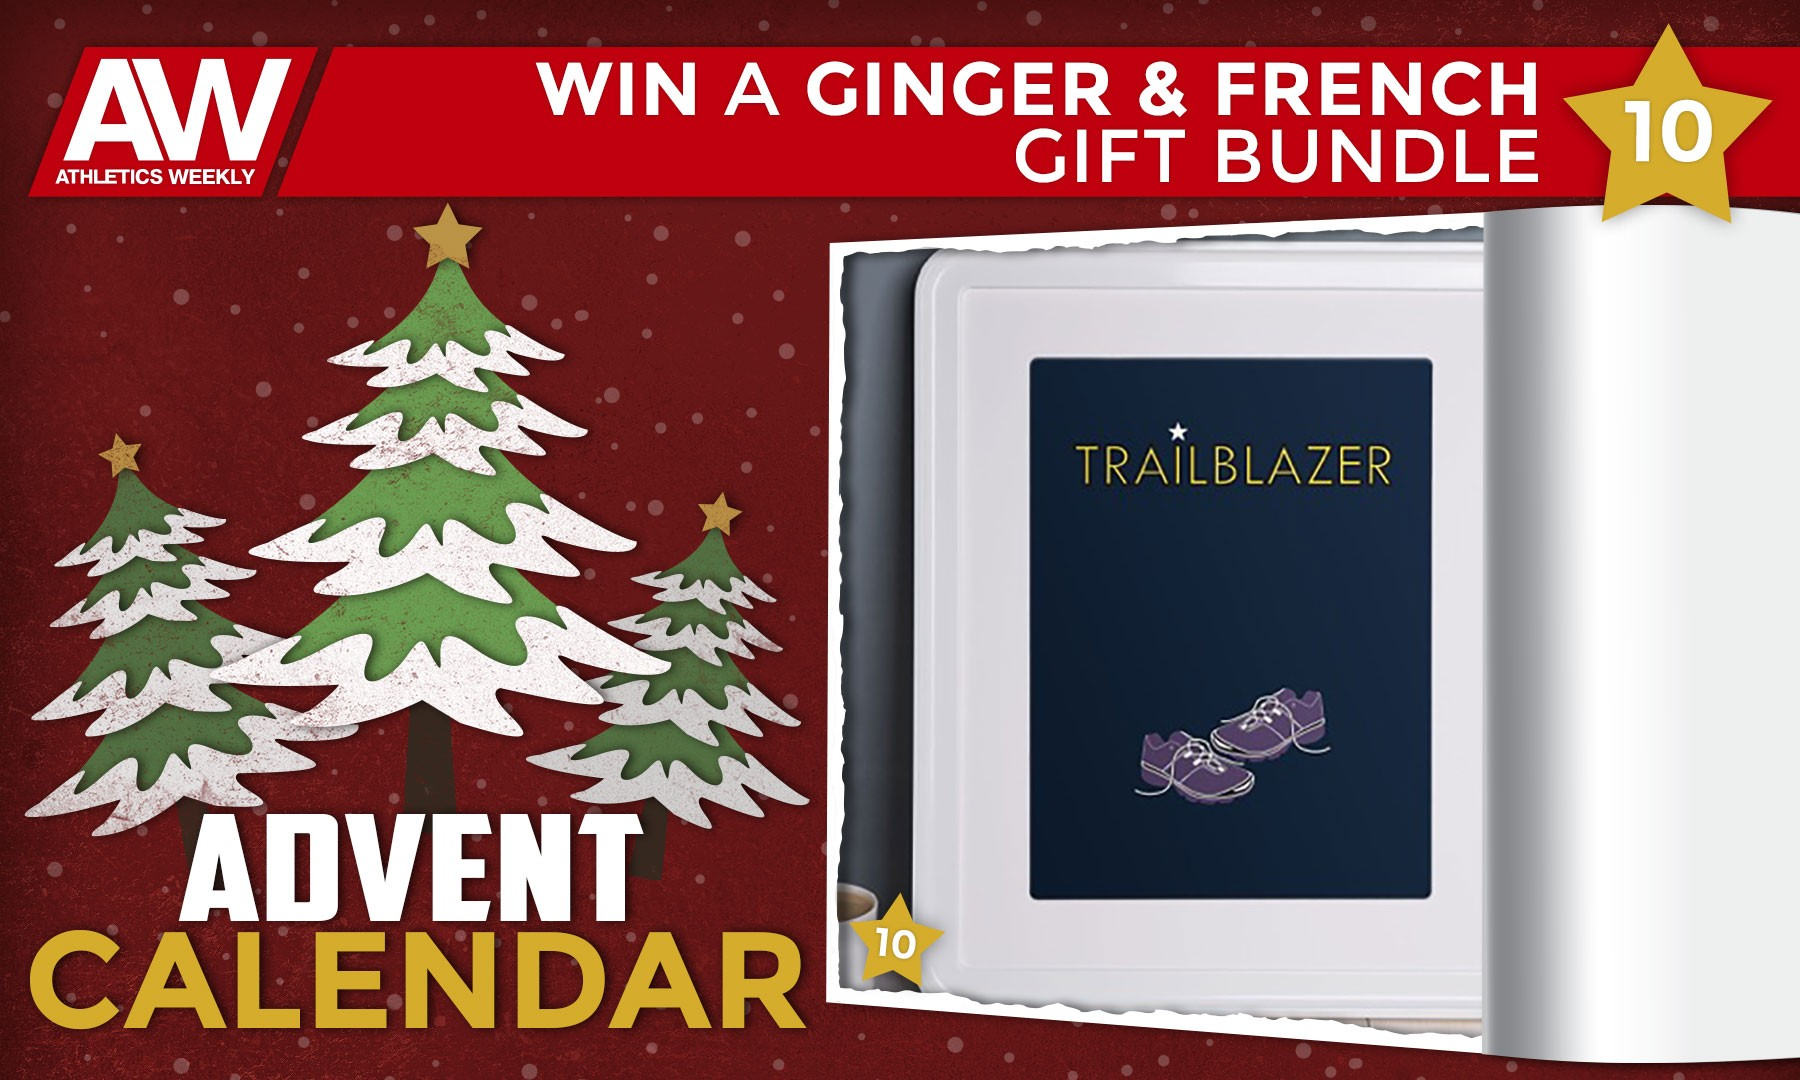 Win a Ginger & French gift bundle